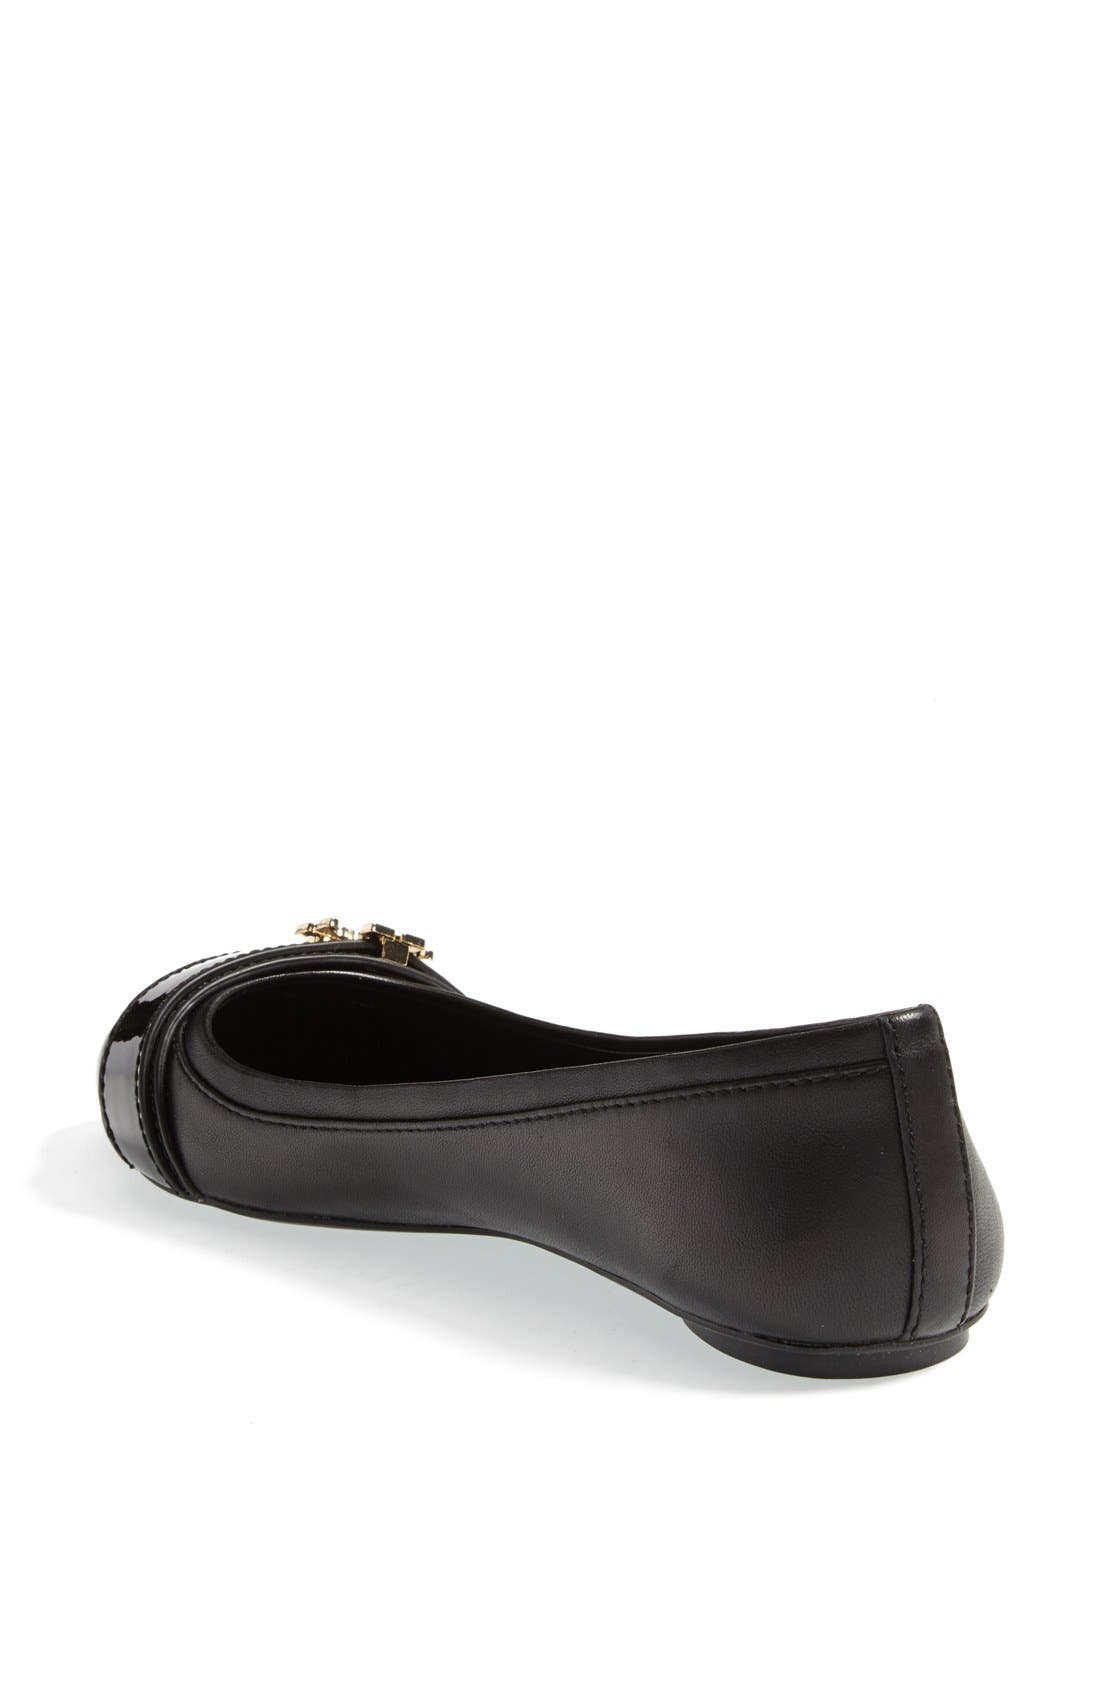 Alternate Image 2  - Tory Burch 'Eloise' Ballet Flat (Women)